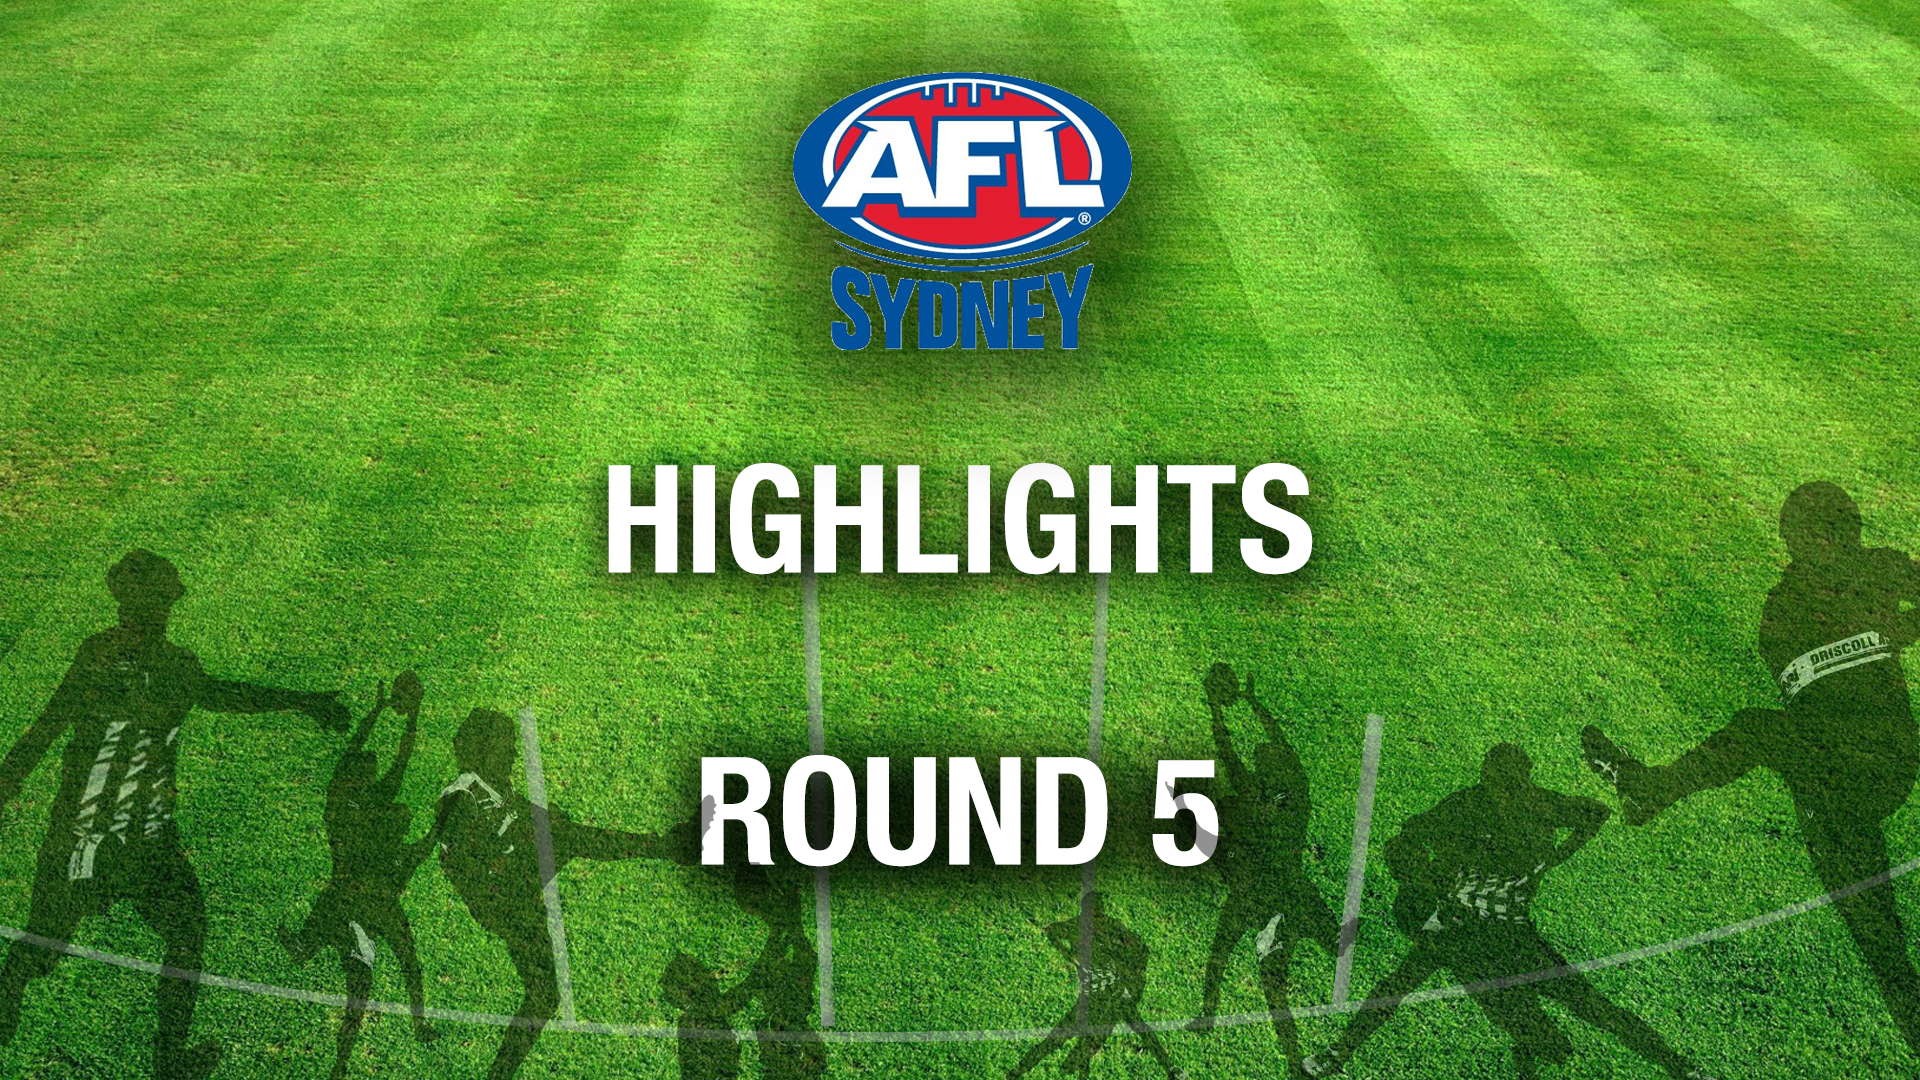 AFL SYDNEY 2018 RD5 HIGHLIGHTS